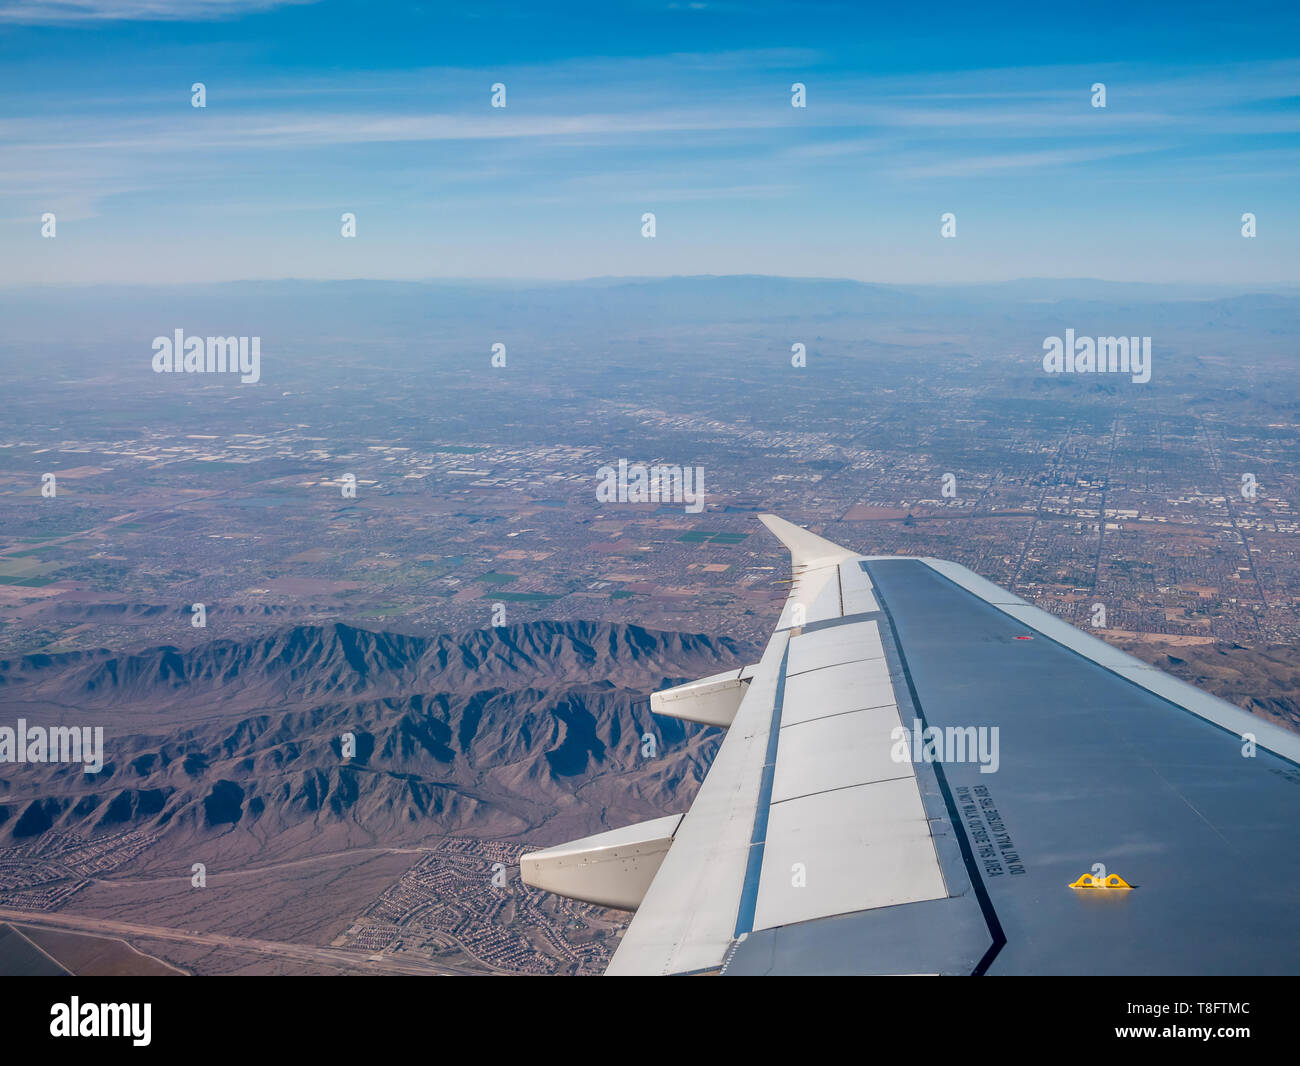 Commertial Airplane Making a Left Turn OVer Phoenix Arizona - Stock Image